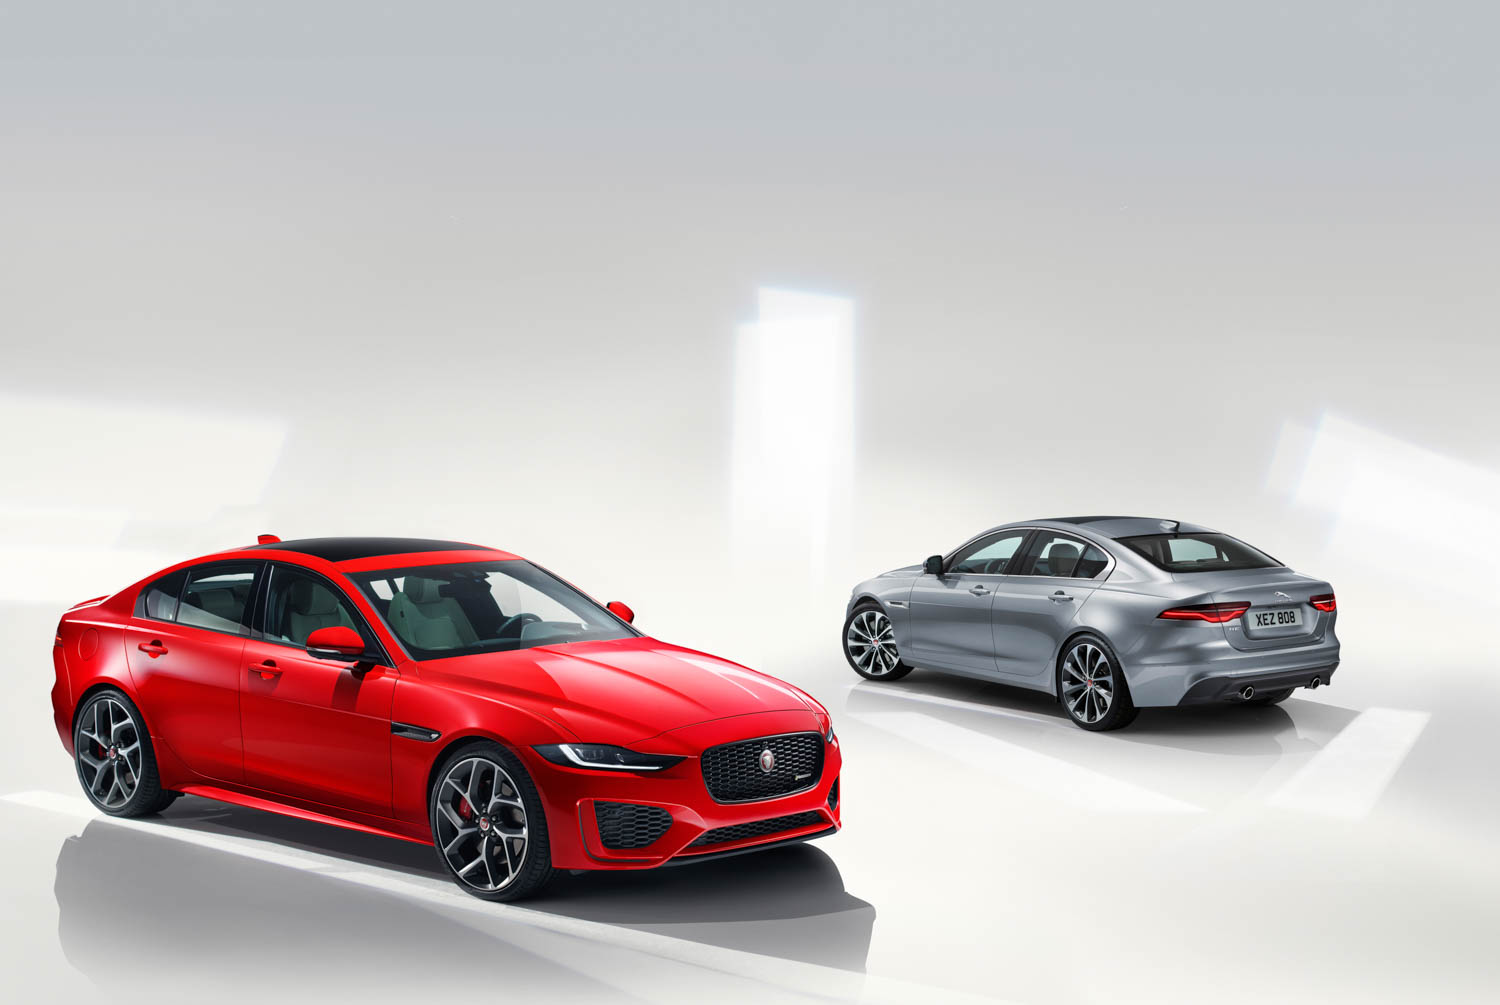 2020 Jaguar XE front and rear 3/4